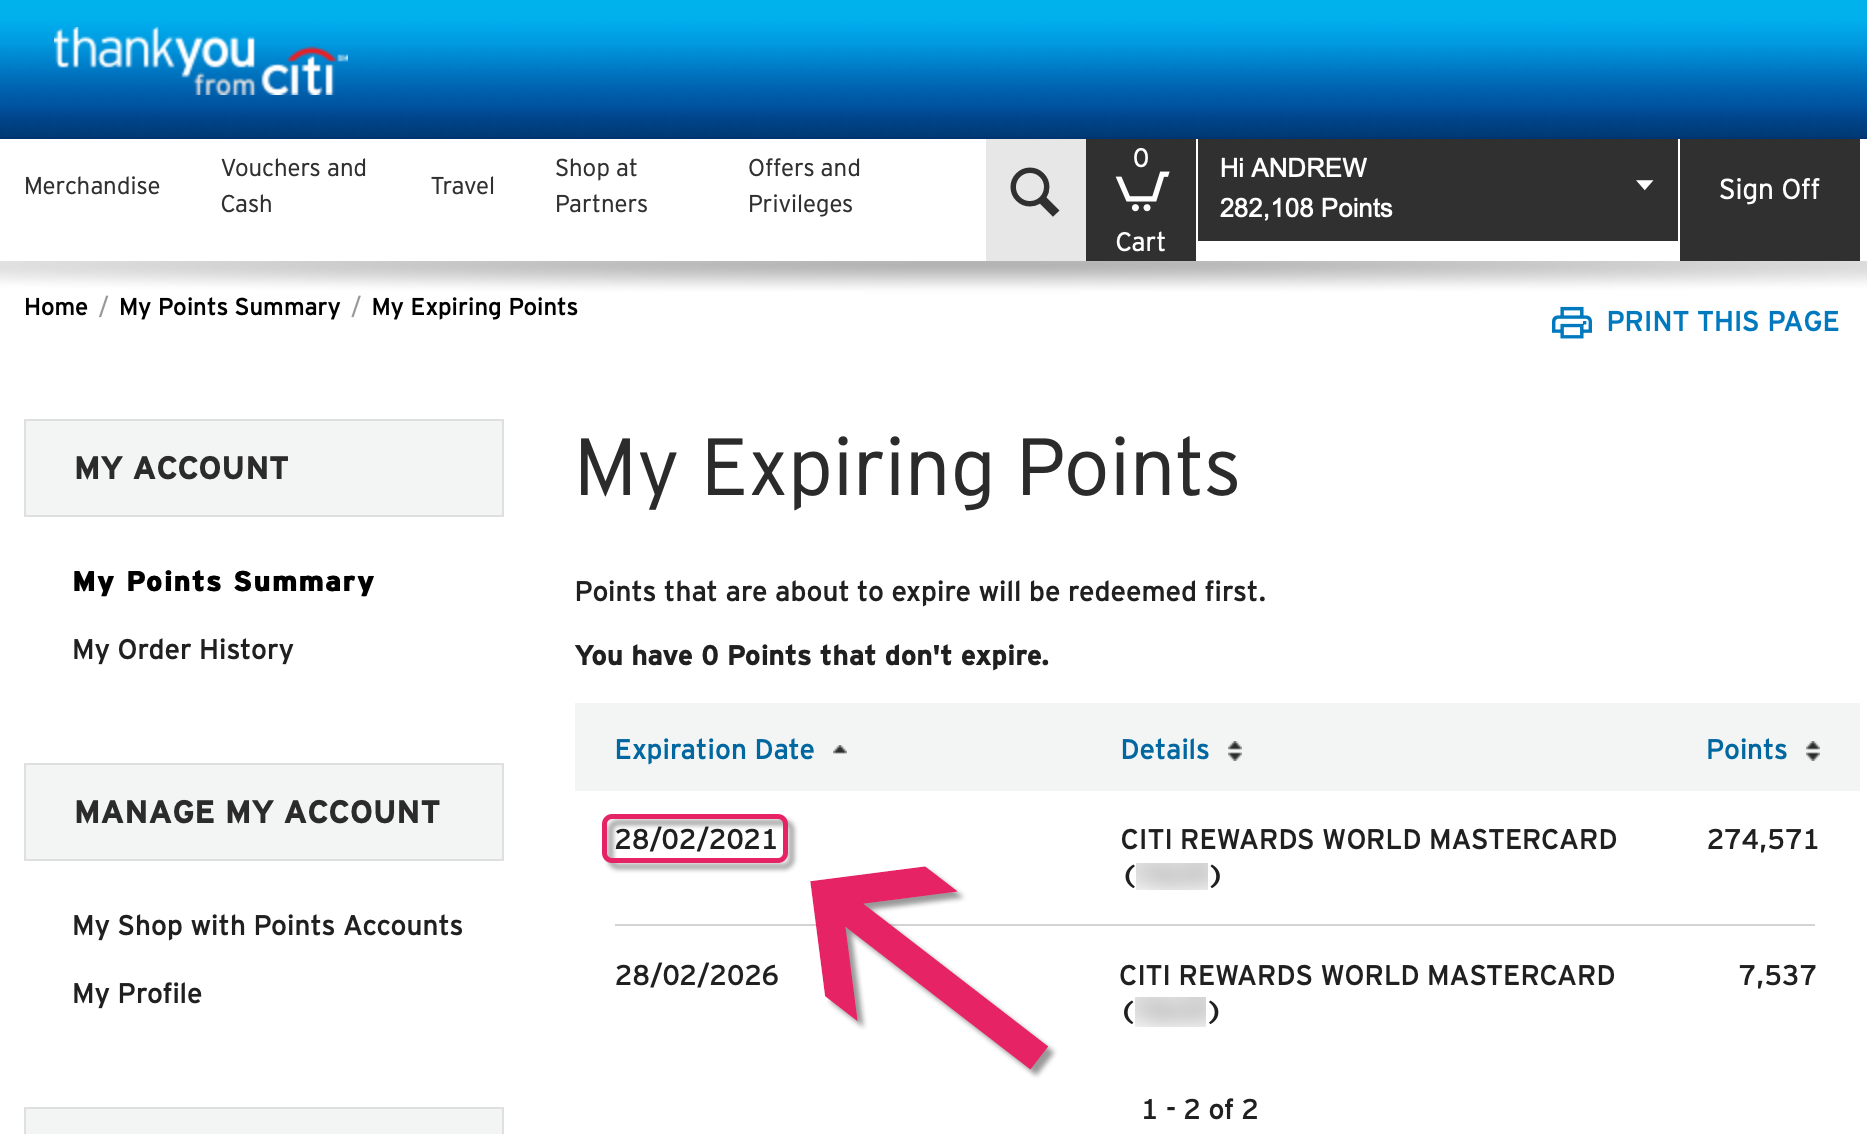 beware of the unusual citi rewards points expiry policy